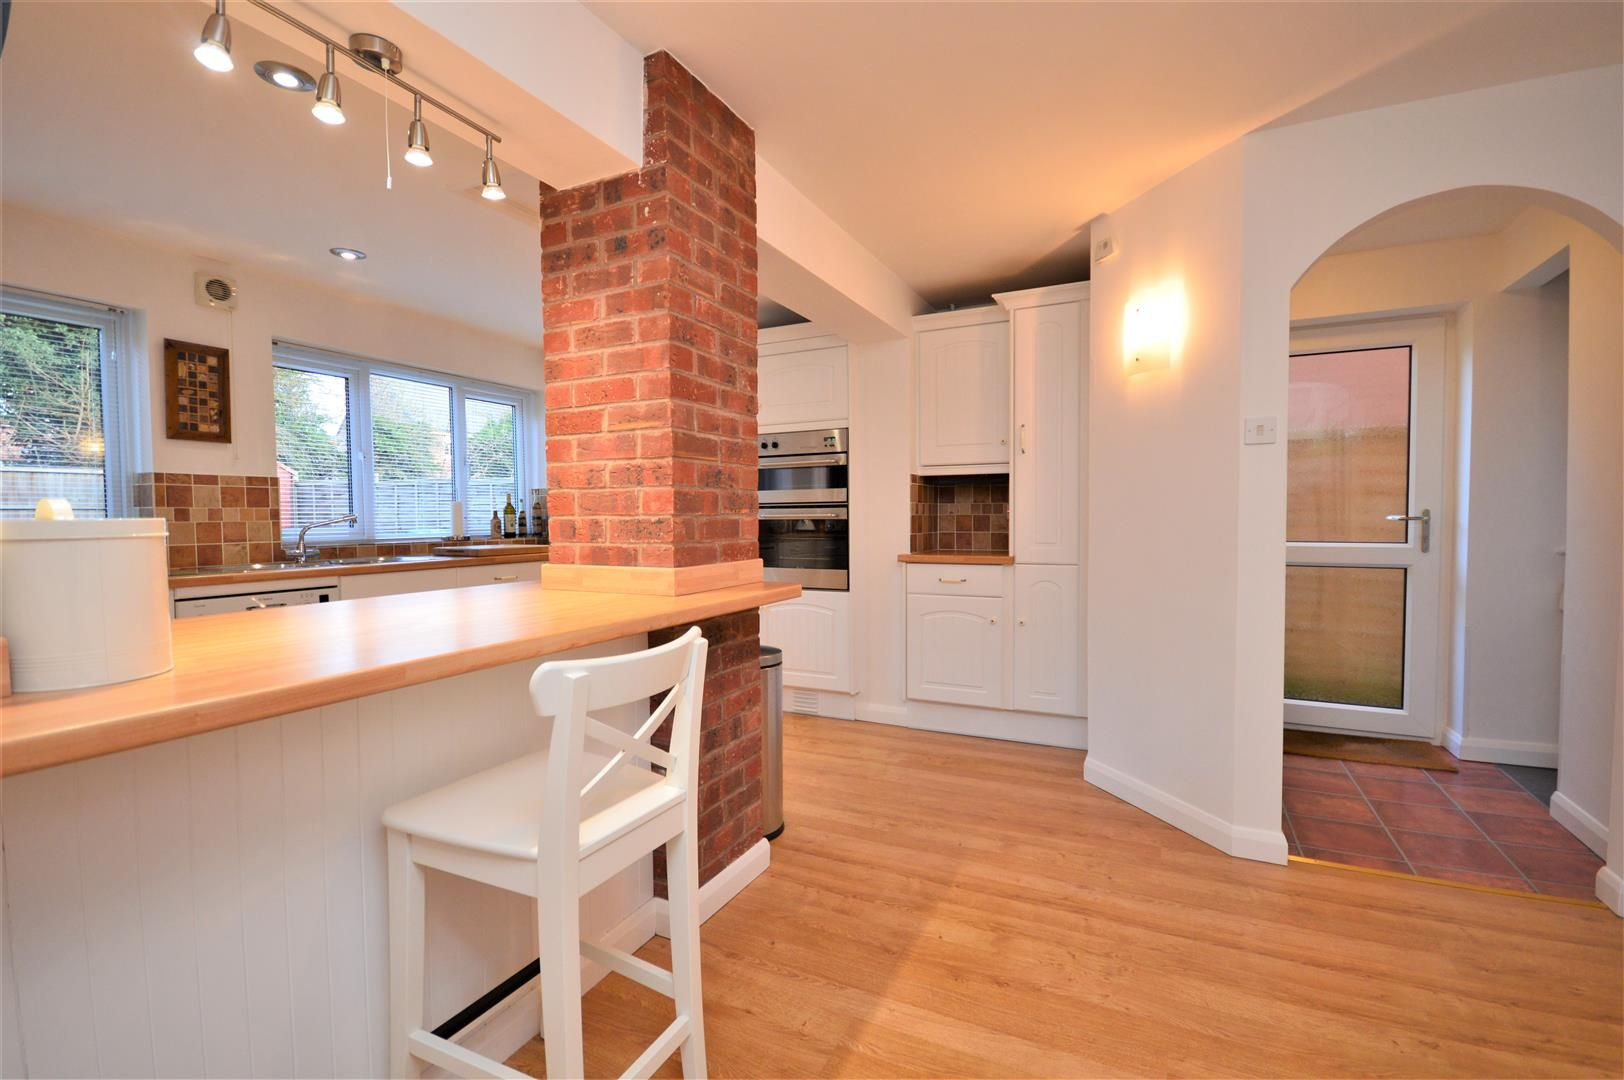 4 bed detached for sale in Hereford 6